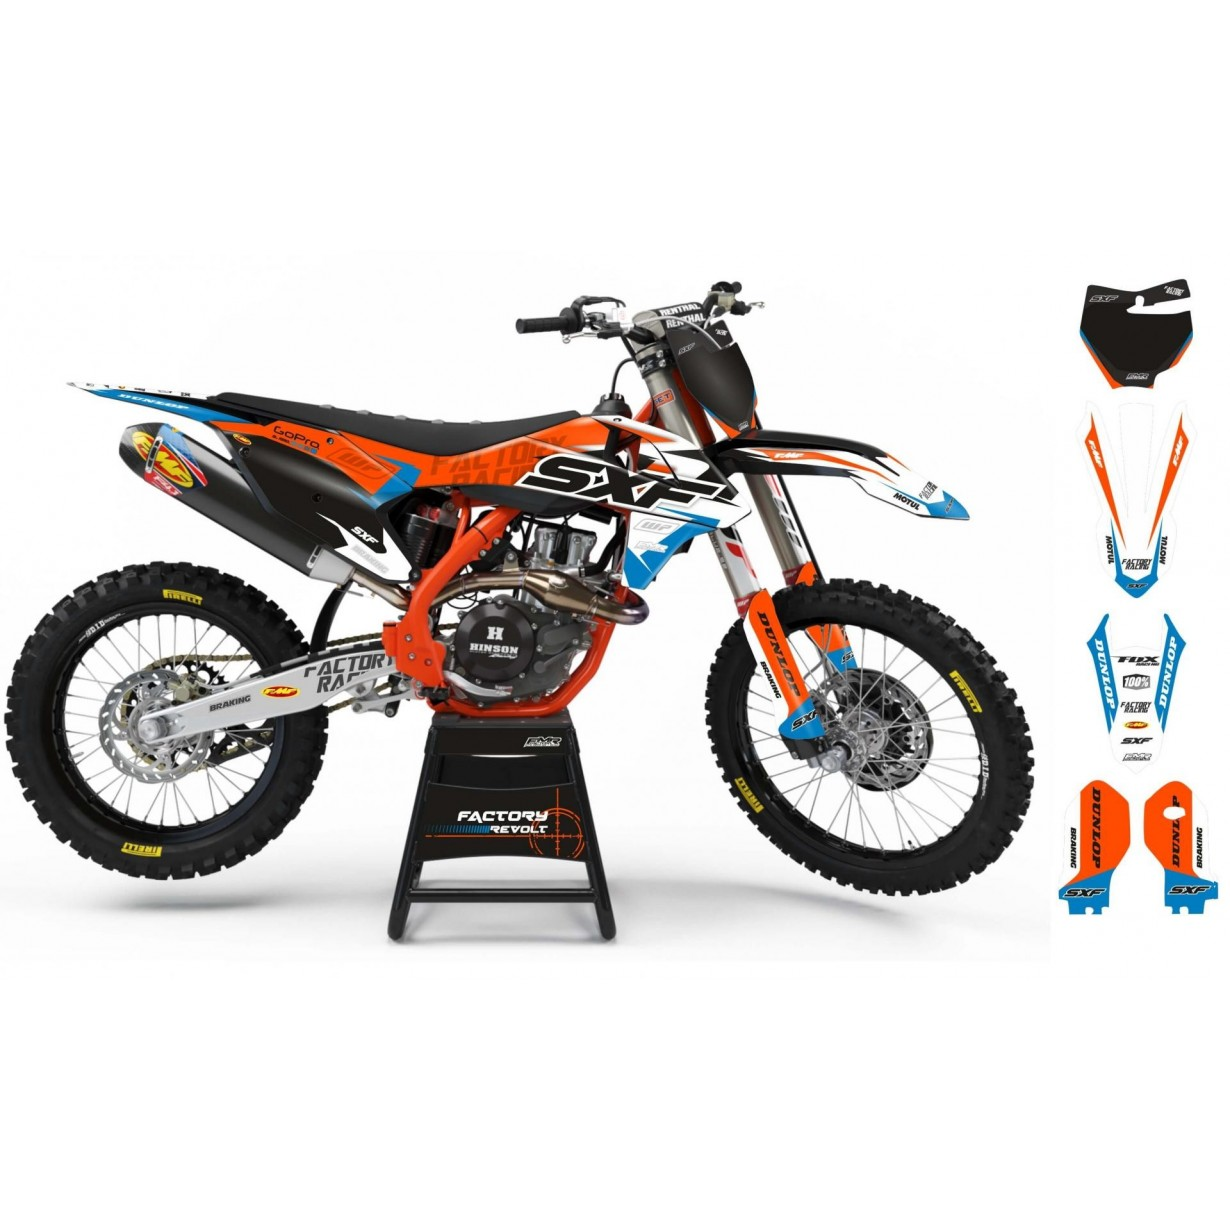 Kit déco Perso KTM Factory Revolt A26C4 orange/white/blue